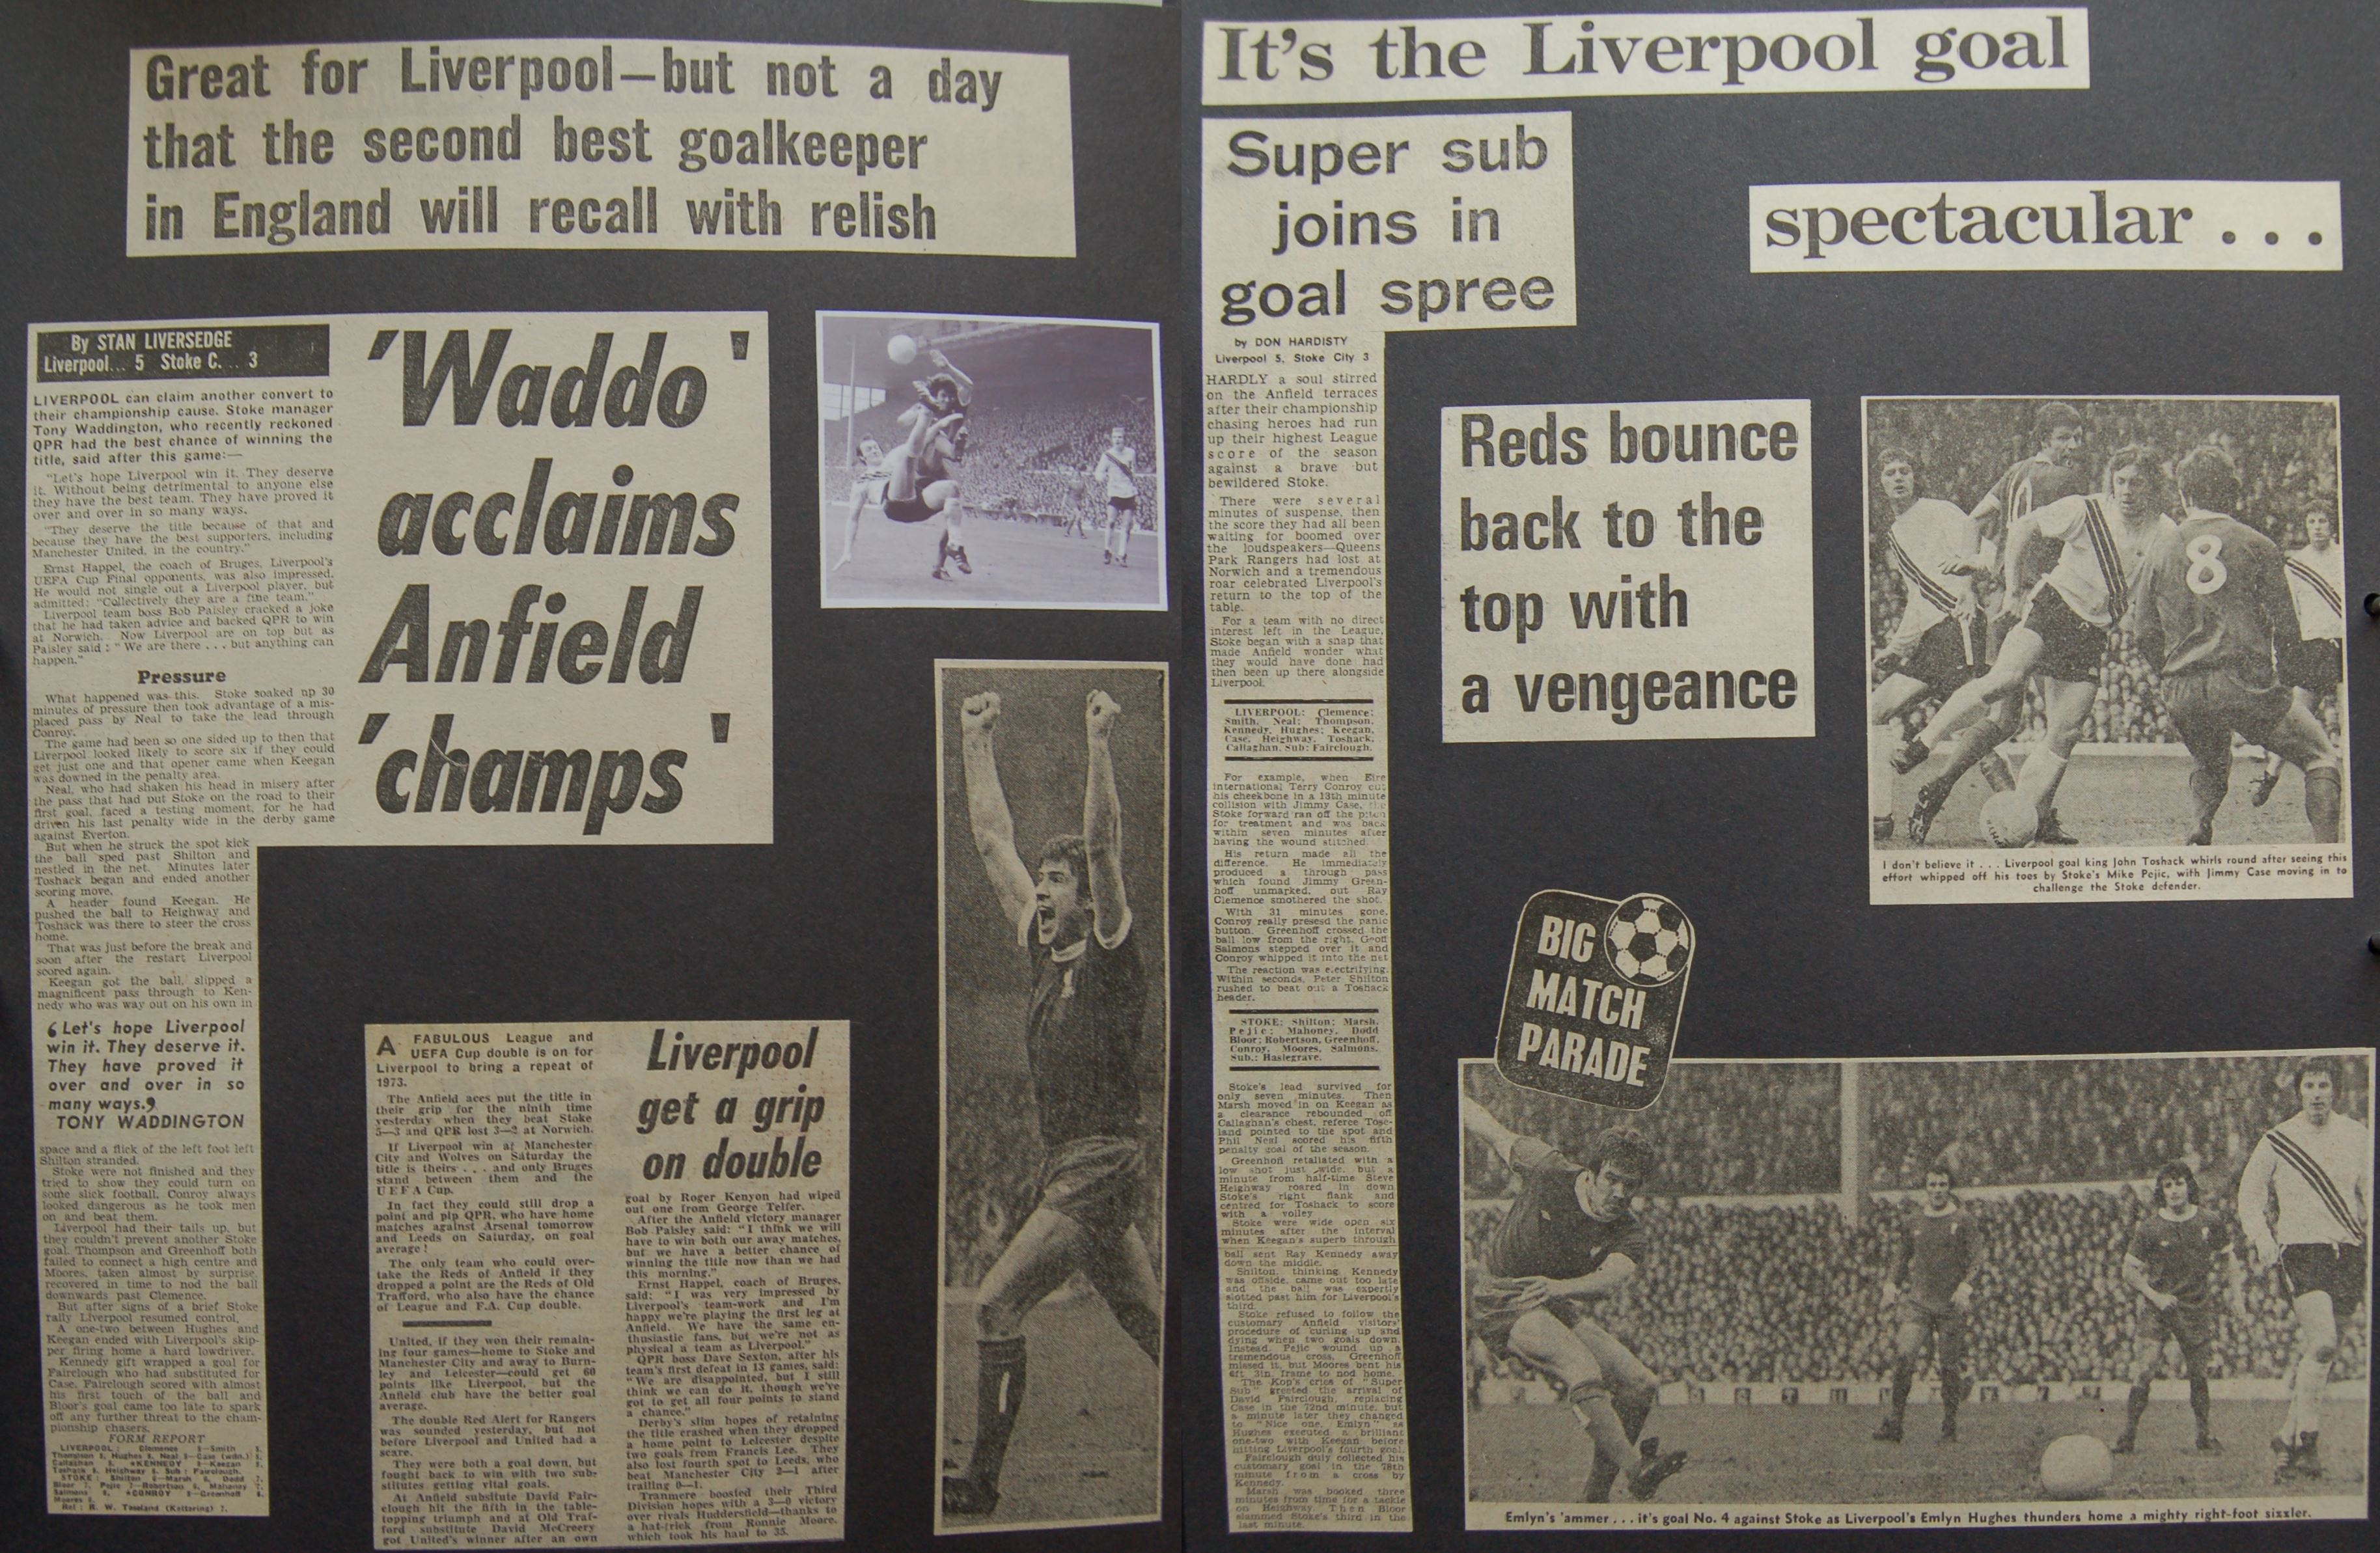 Super sub joins in the goal spree! - 17 April 1976